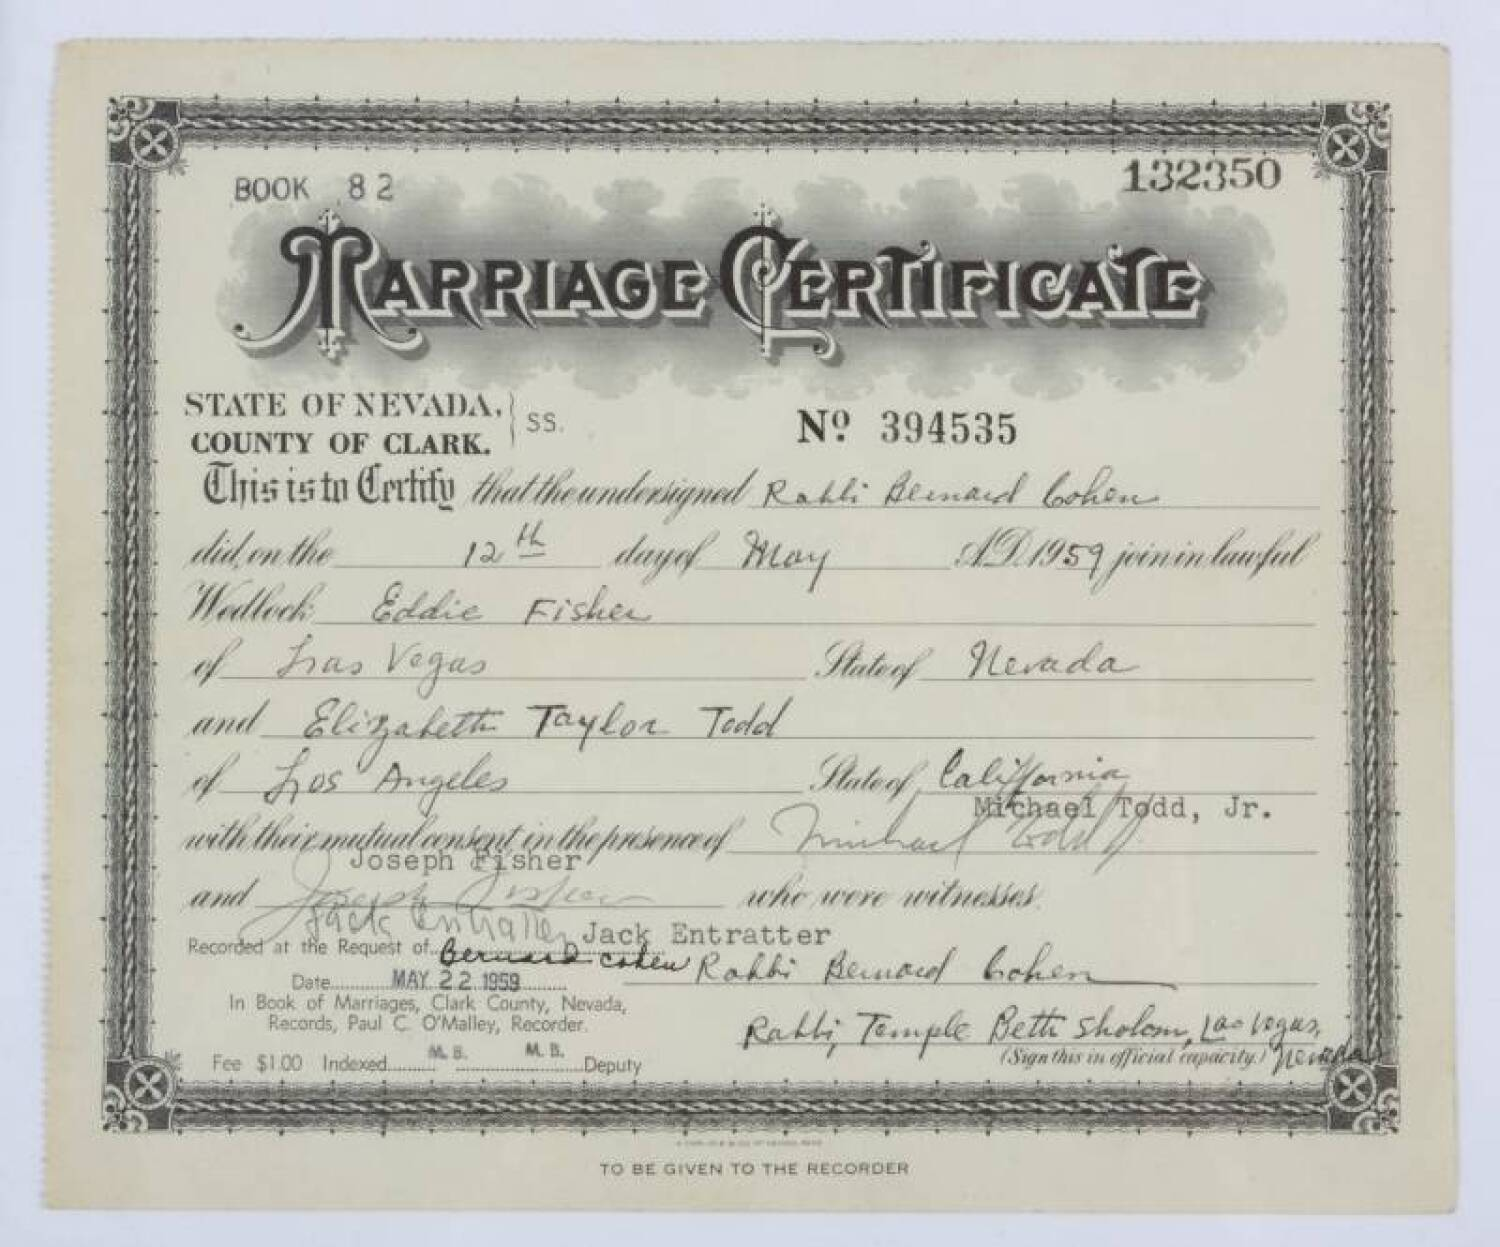 ELIZABETH TAYLOR AND EDDIE FISHER MARRIAGE CERTIFICATE